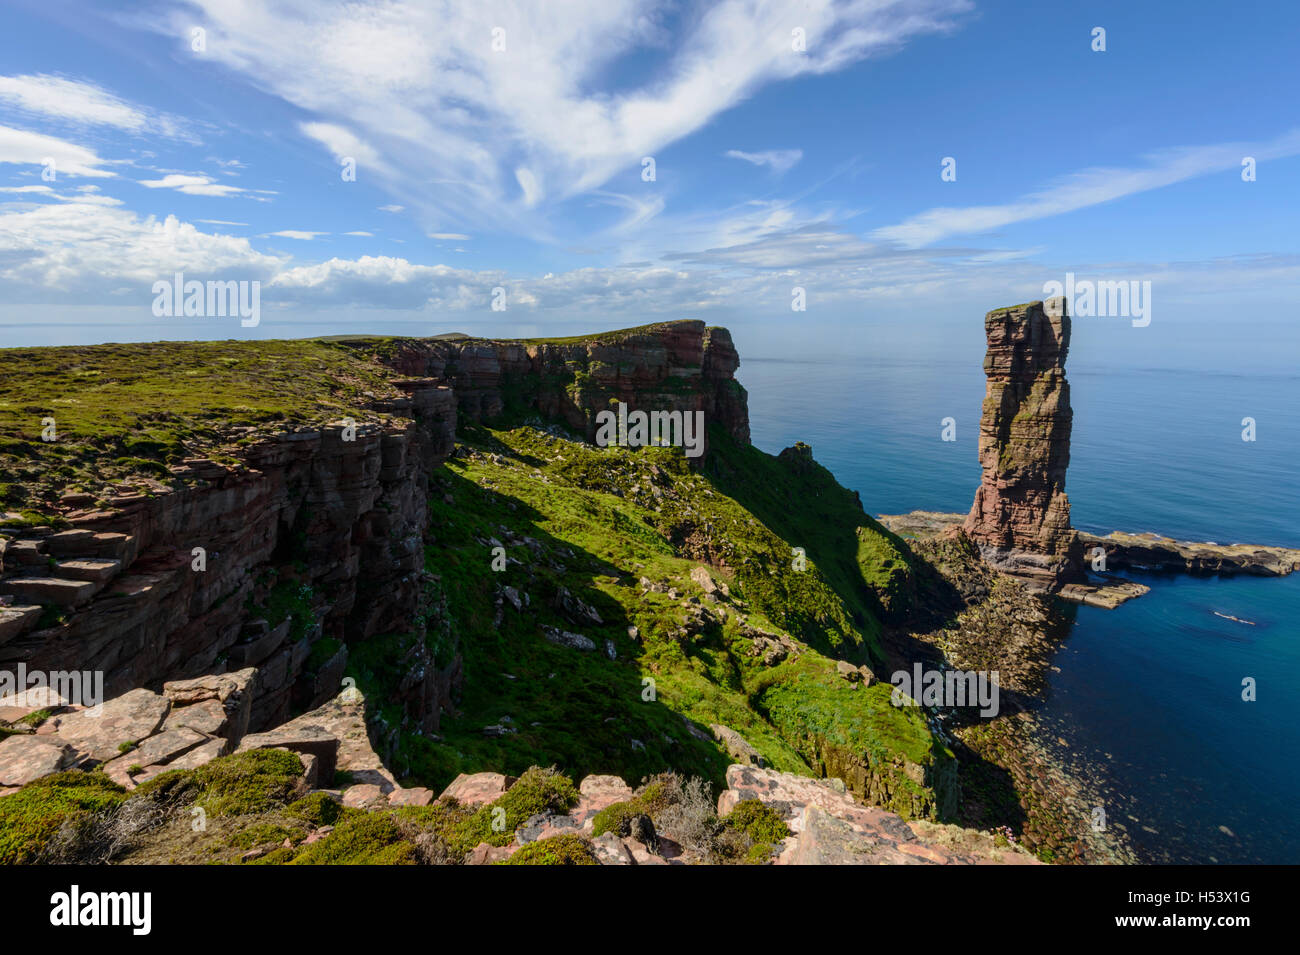 Old Man of Hoy, Hoy, Orkney Islands, Scotland. - Stock Image